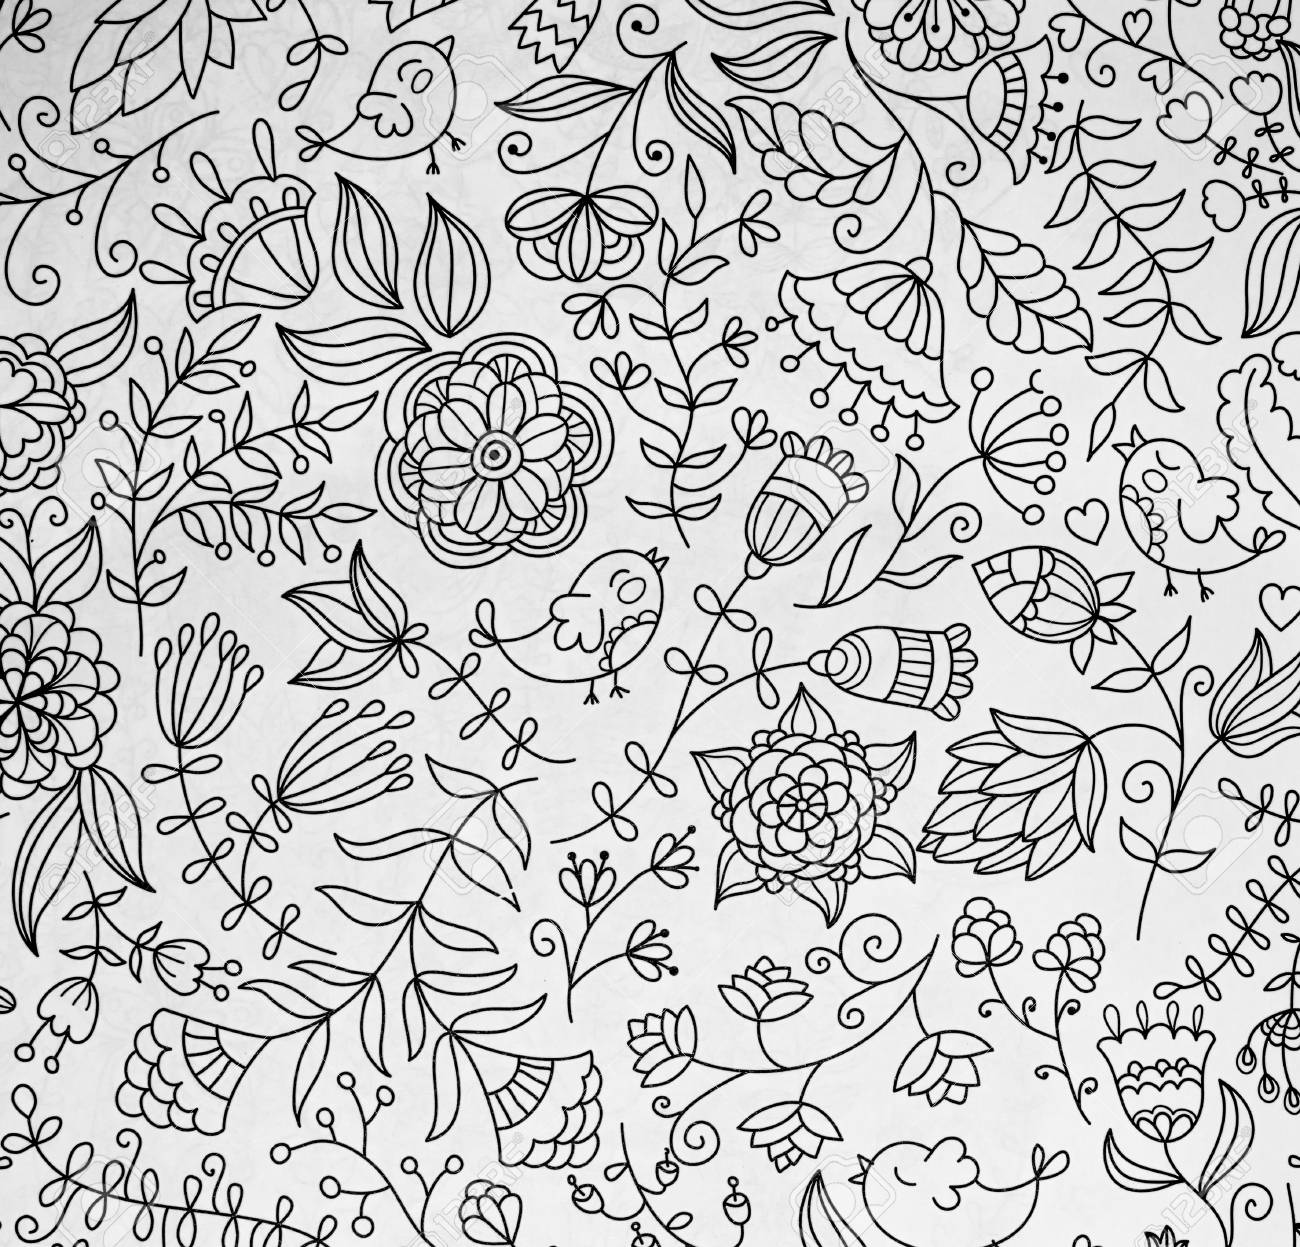 Abstraction Coloring Pages For Adults Stress Relief Top View